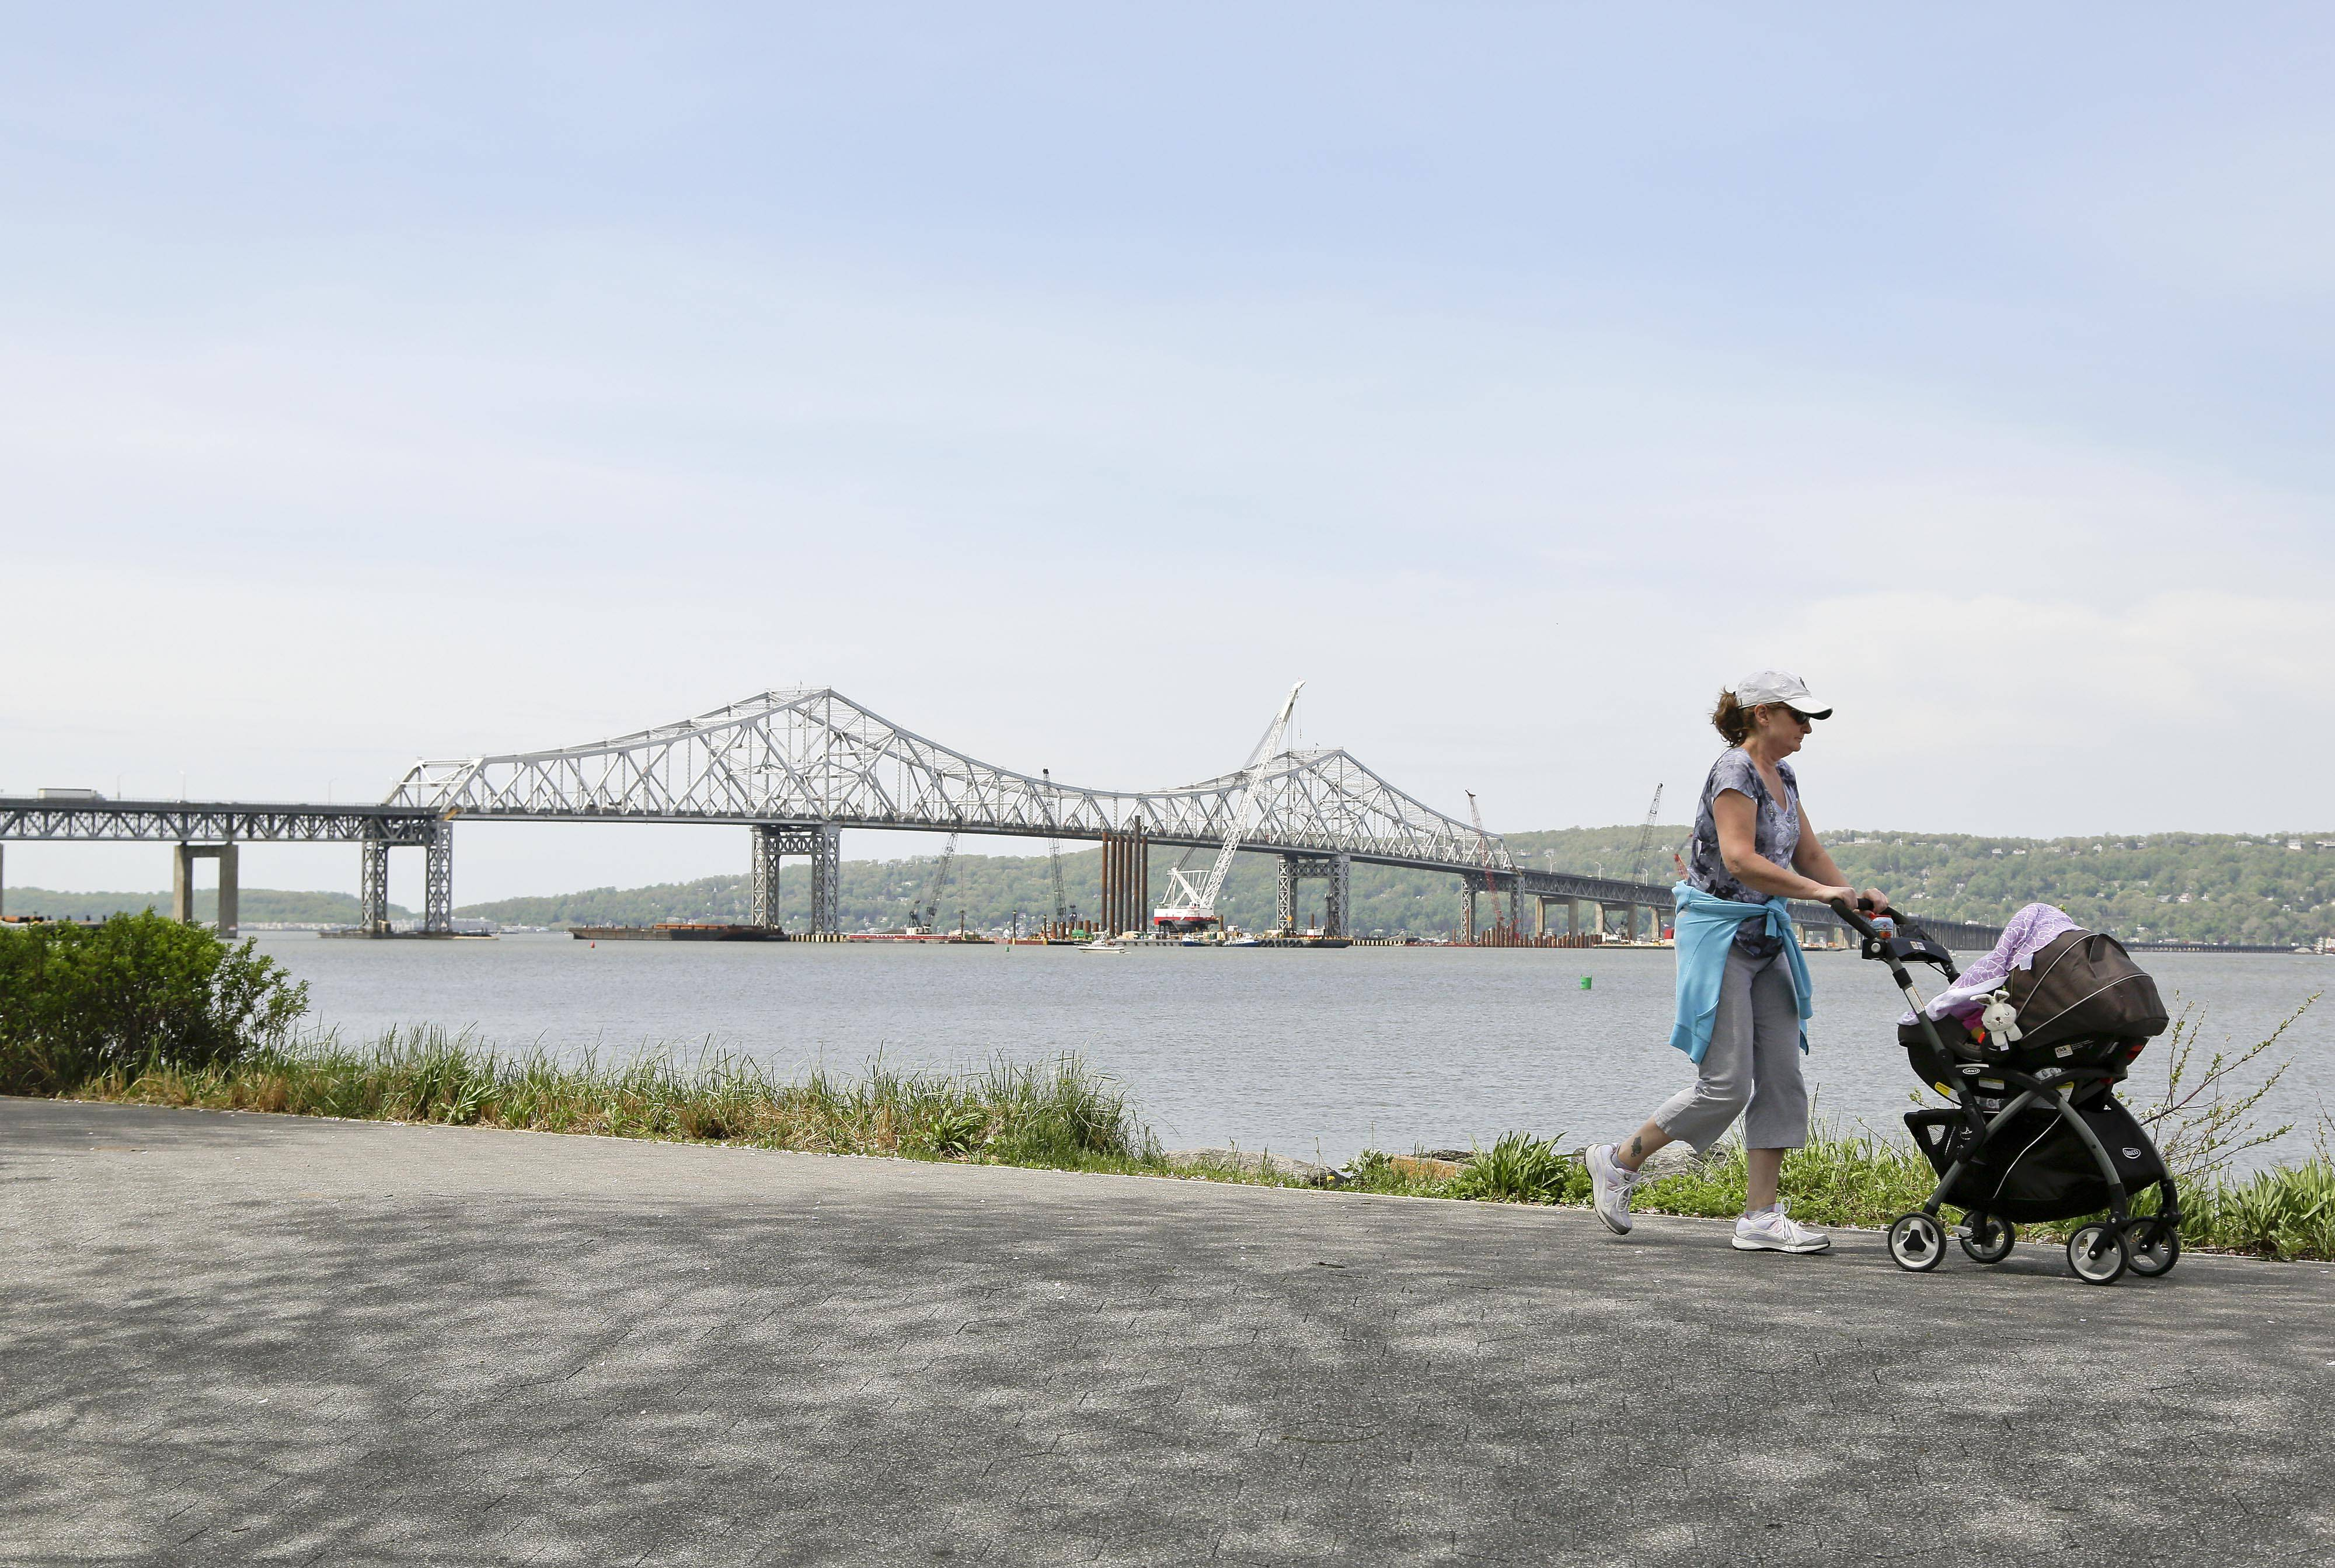 A woman takes a stroll with her child along the Westchester Riverwalk just north of the Tappan Zee Bridge in Tarrytown, N.Y. On Wednesday, President Barack Obama plans to speak by the bridge just north of New York City to press his case that a key federal government fund used to pay for the nation's roads, bridges and ports is running dry and that the economy would be damaged if it is not replenished.